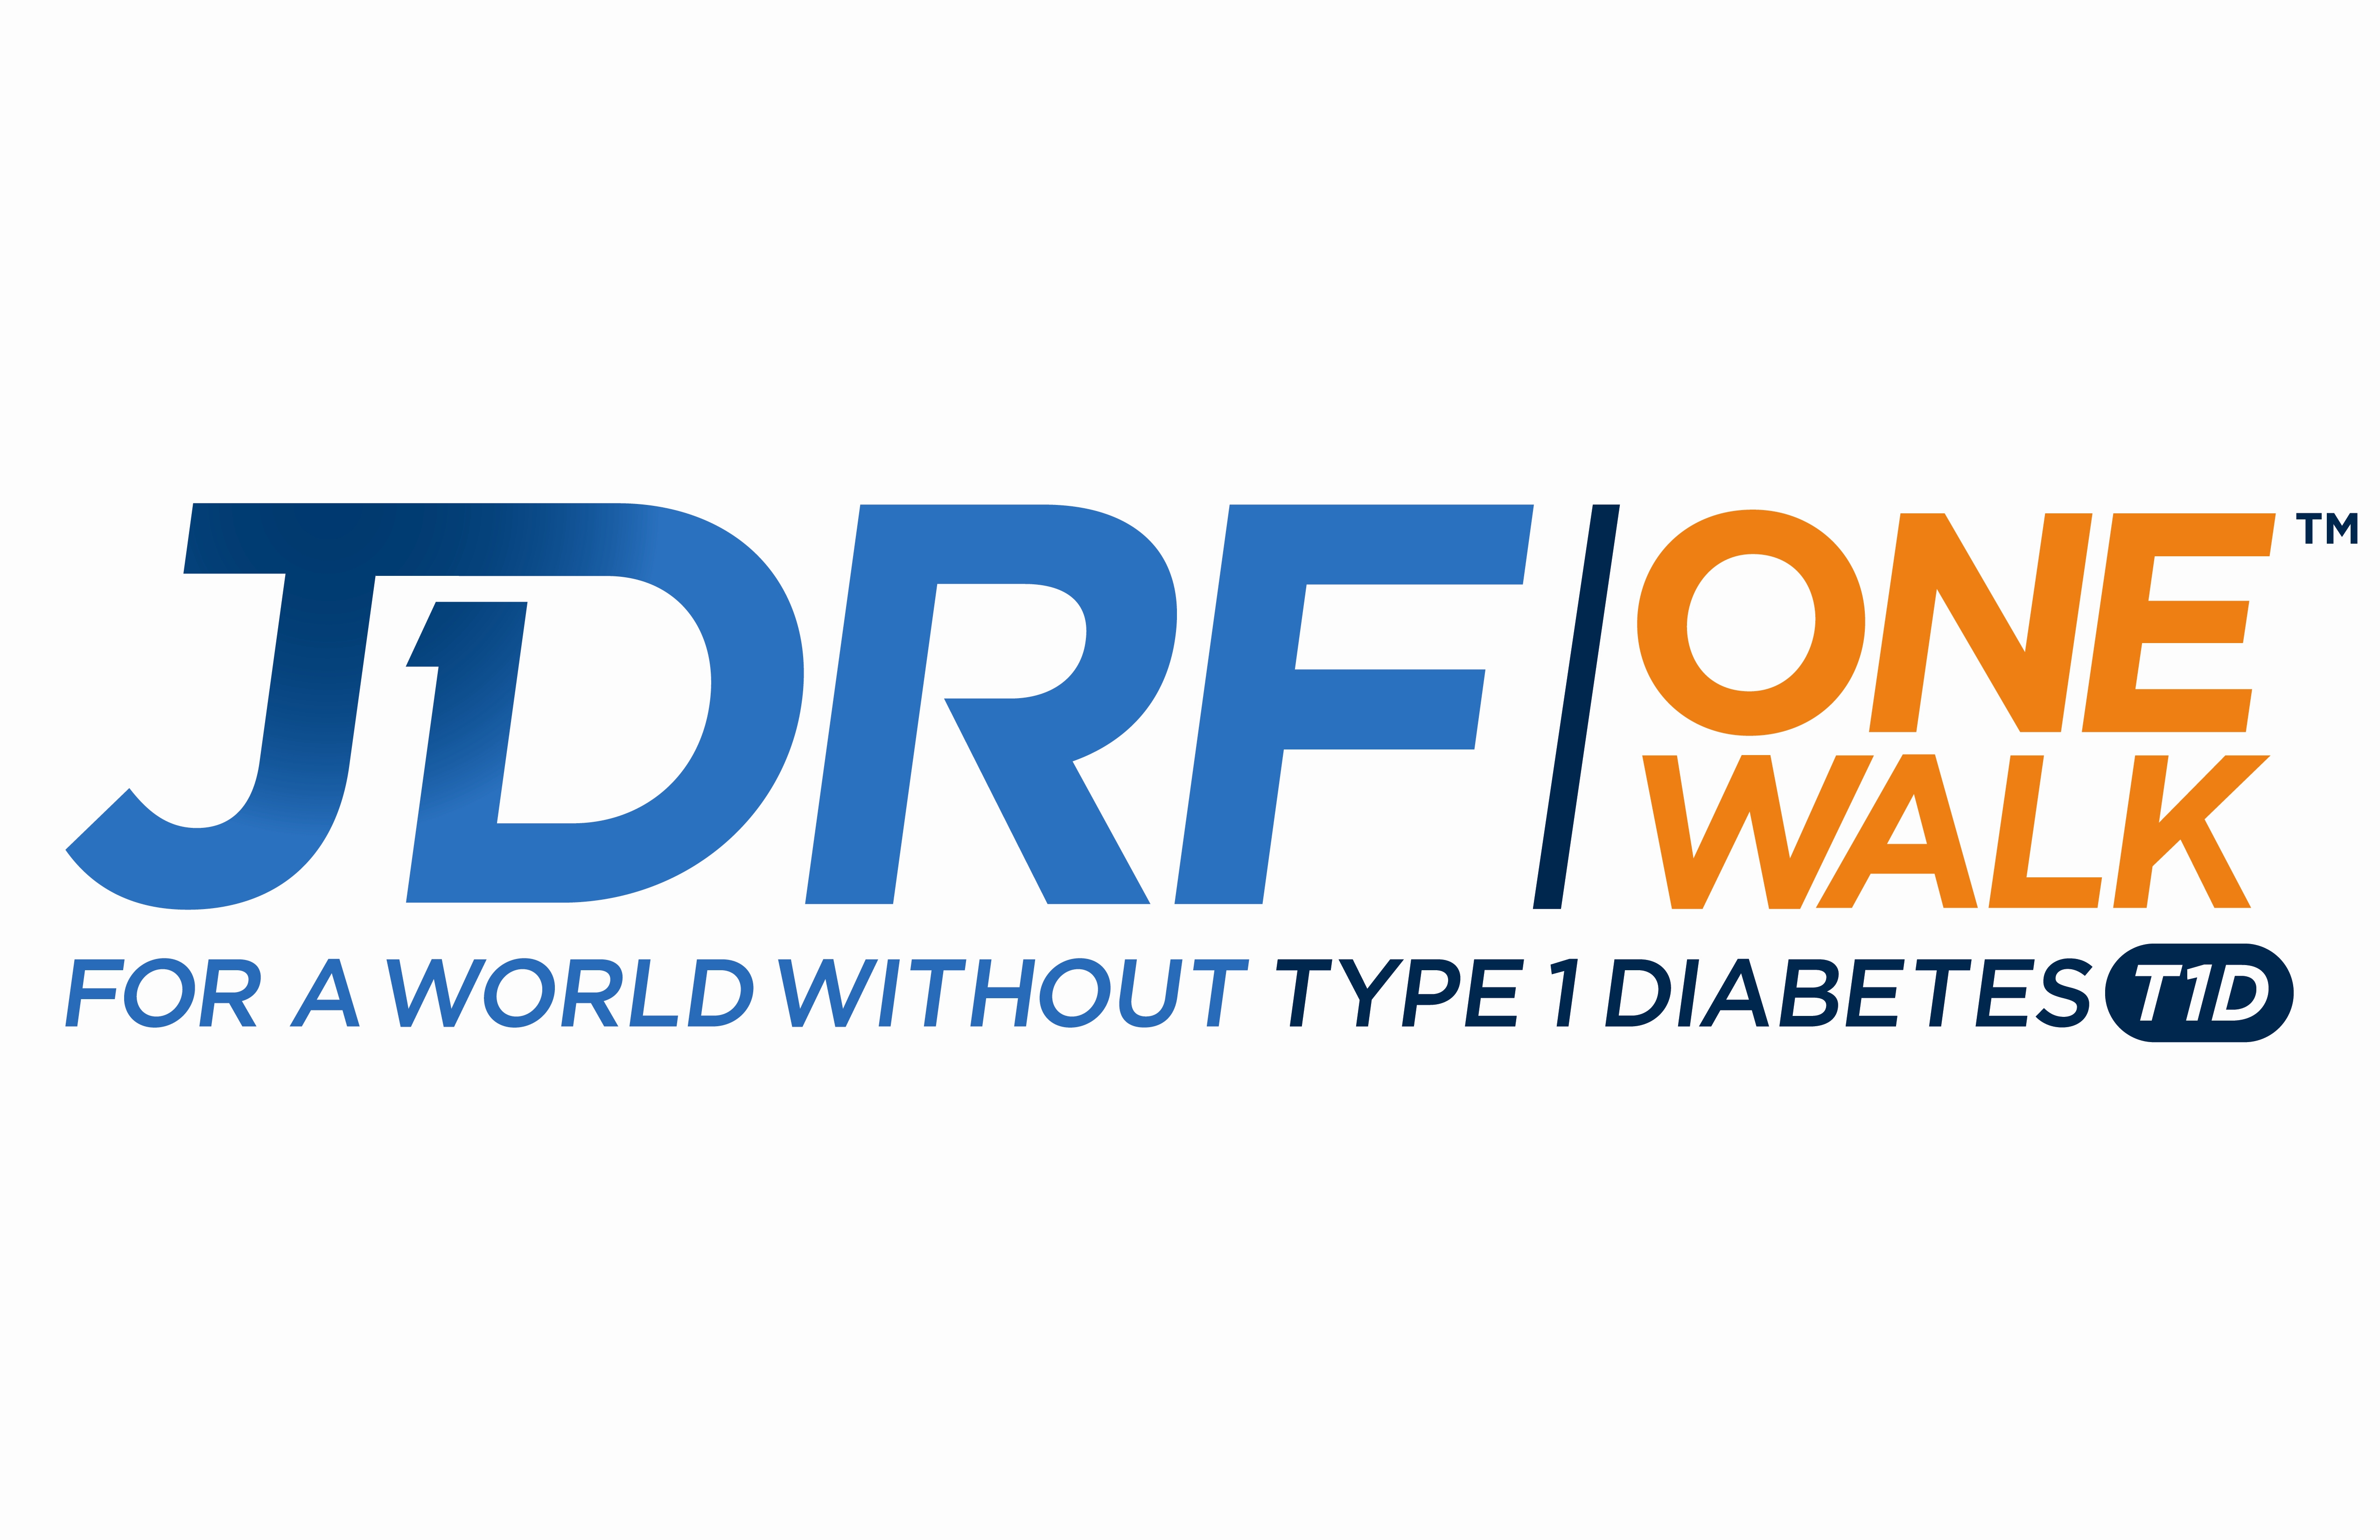 Jdrf 20one 20walk 203 color 20jpeg 20logo 20cmyk